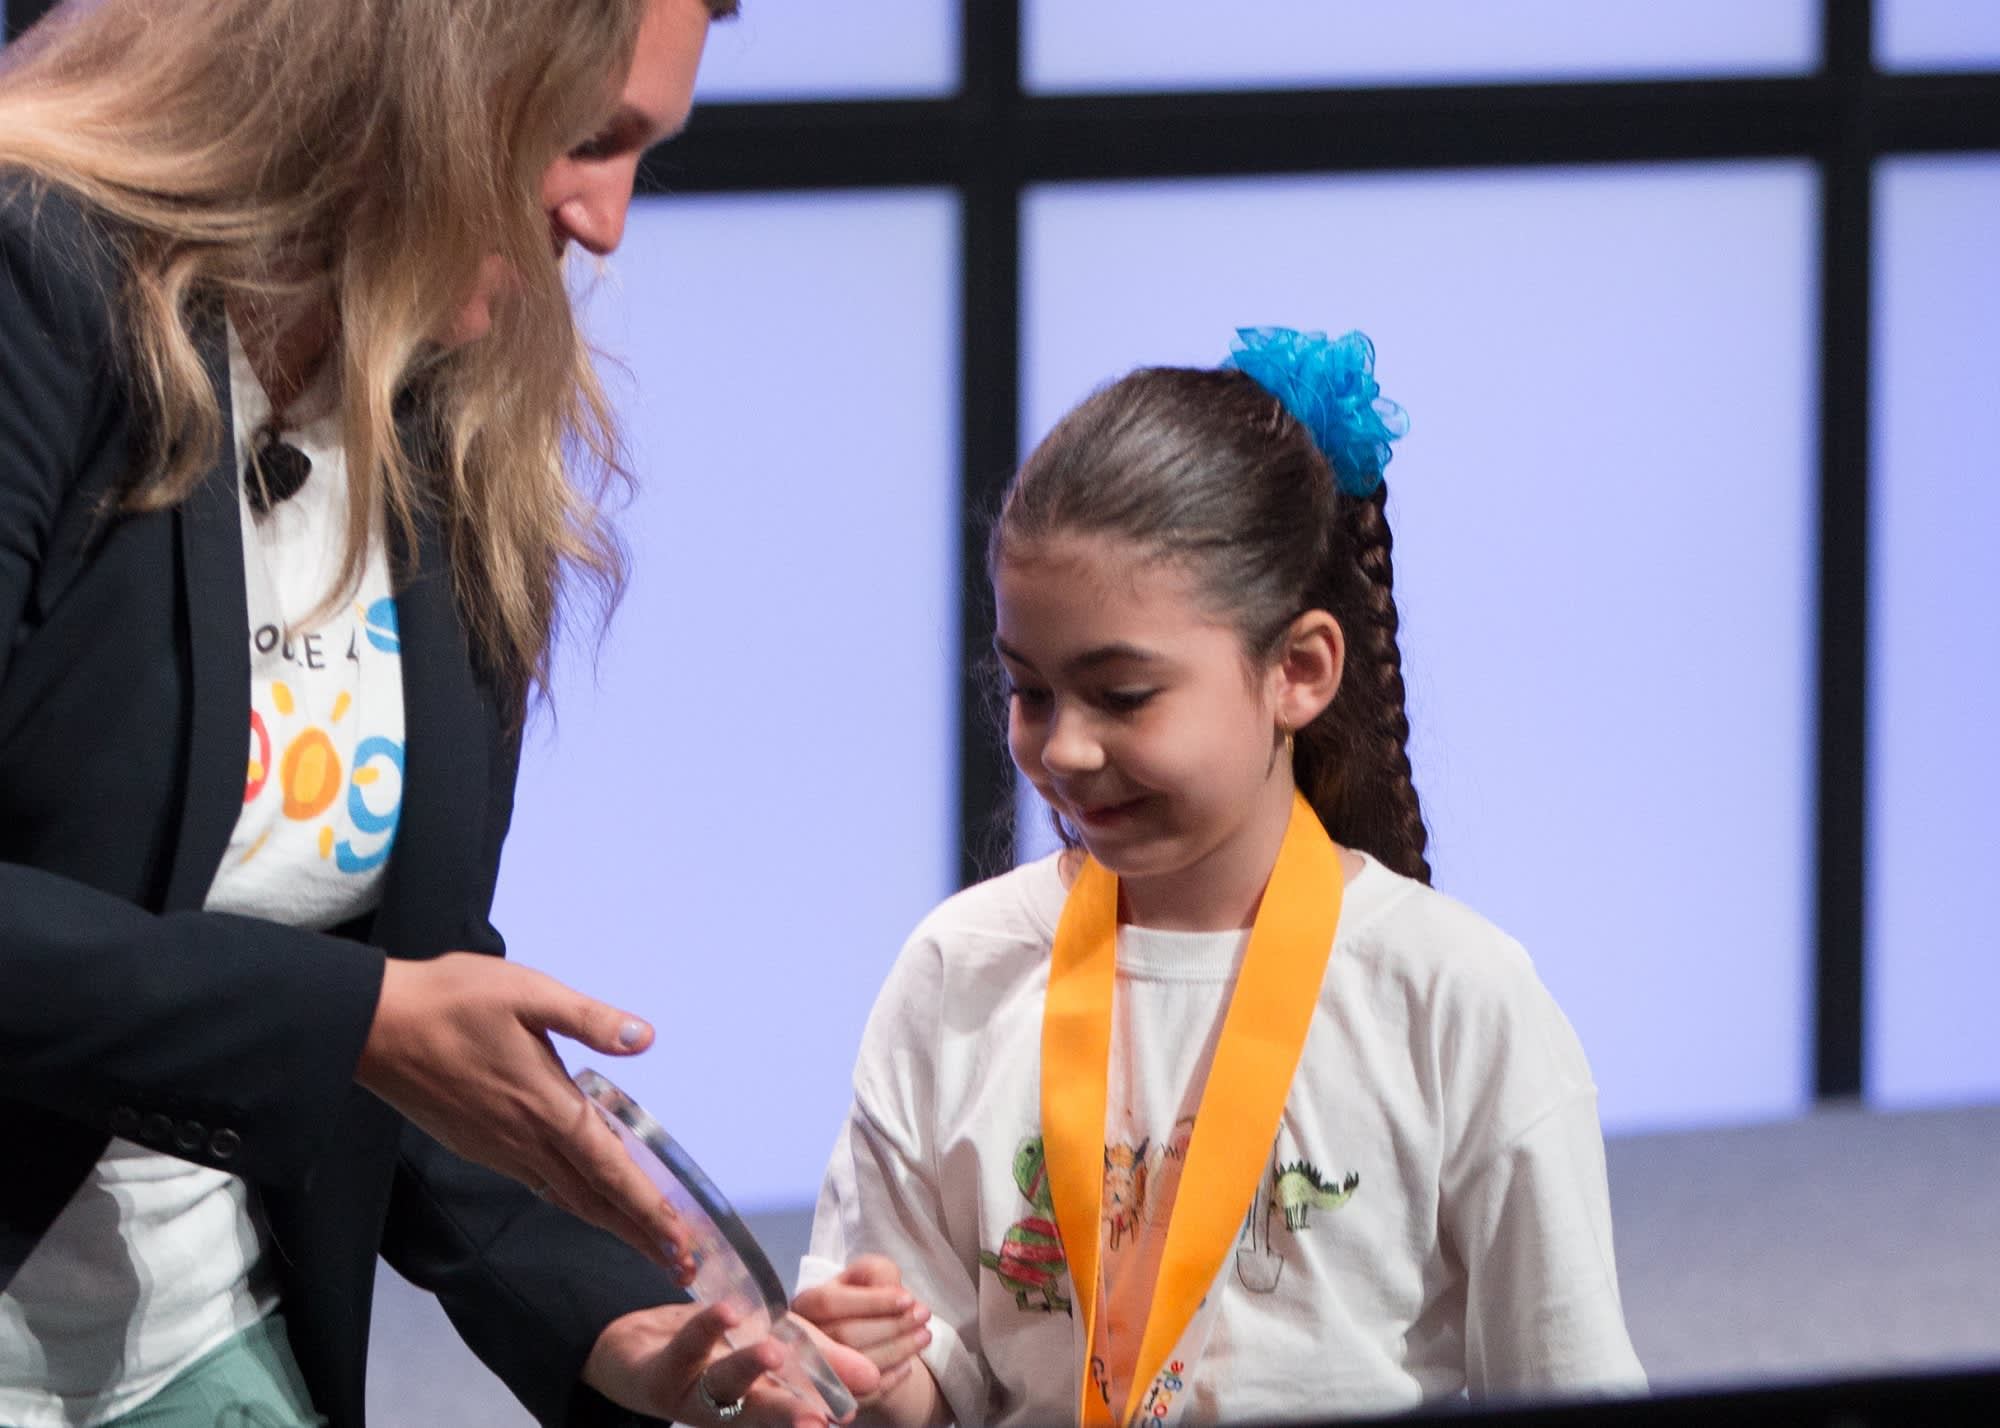 Google Awards 80 000 In Prizes To 7 Year Old Doodle Contest Winner